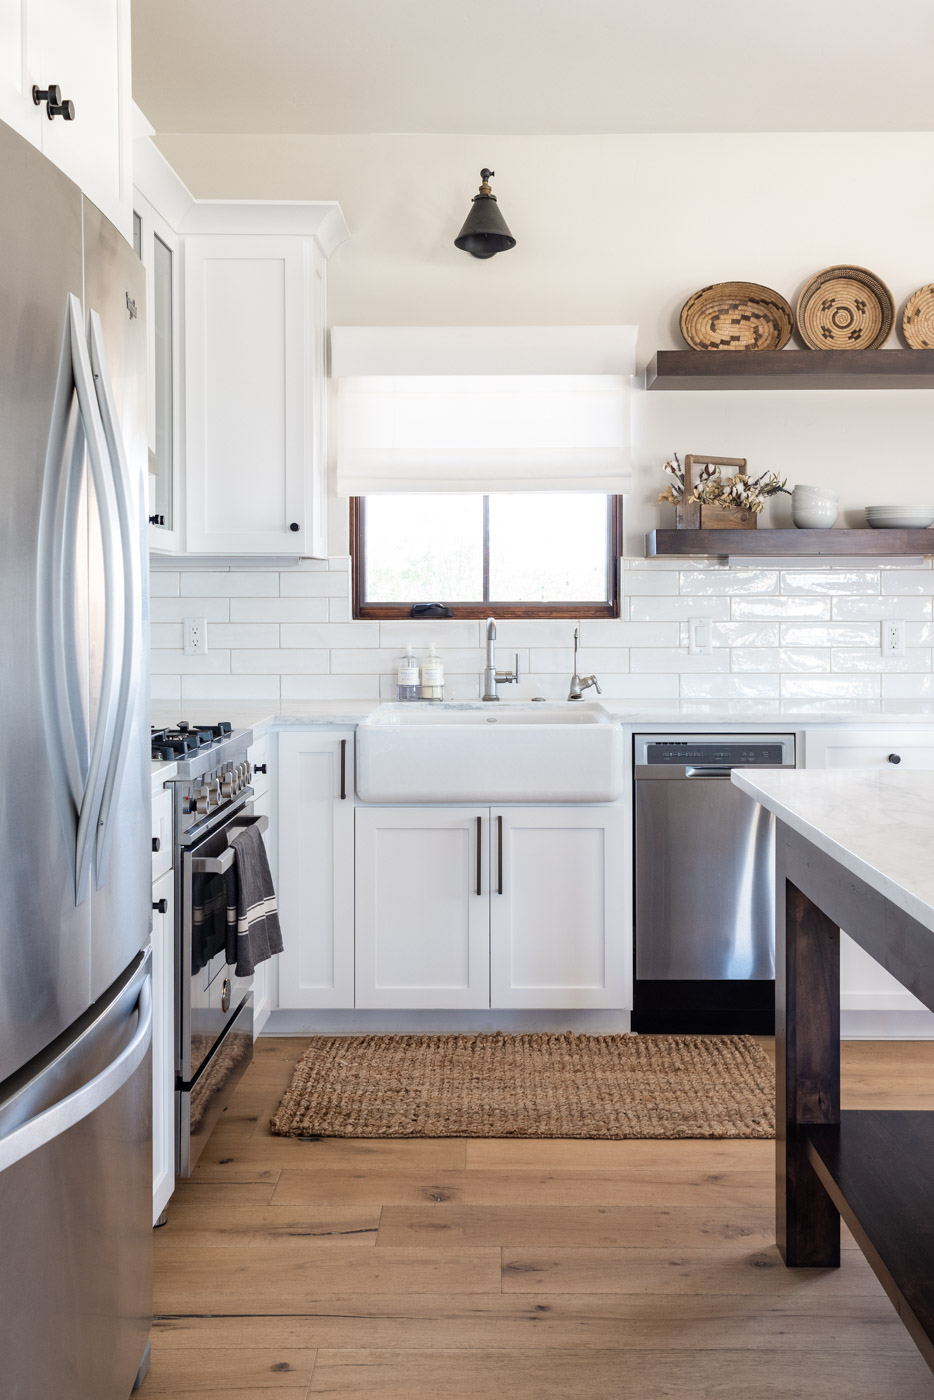 Vineyard Guest House kitchen with custom white painted shaker cabinets farmhouse sink and open shelving